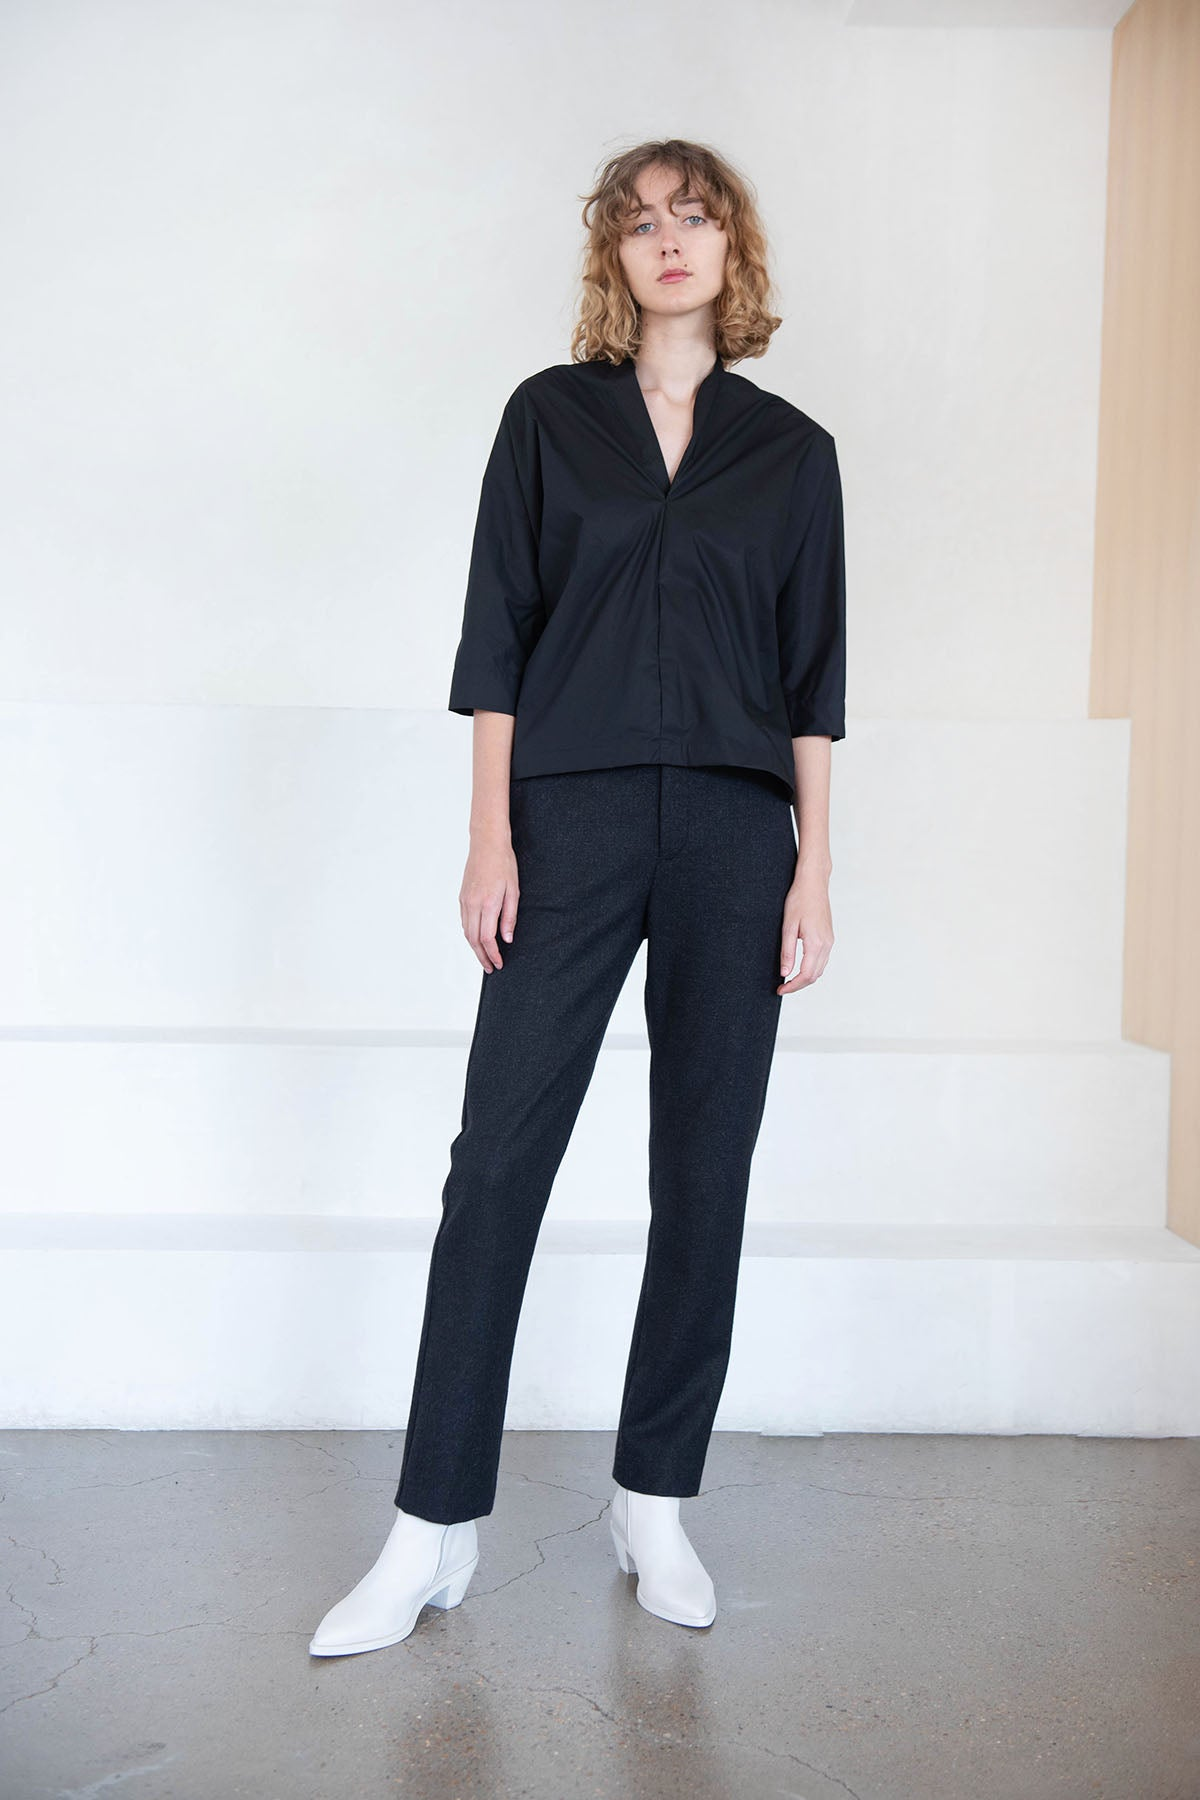 Stephan Schneider - dot top, black